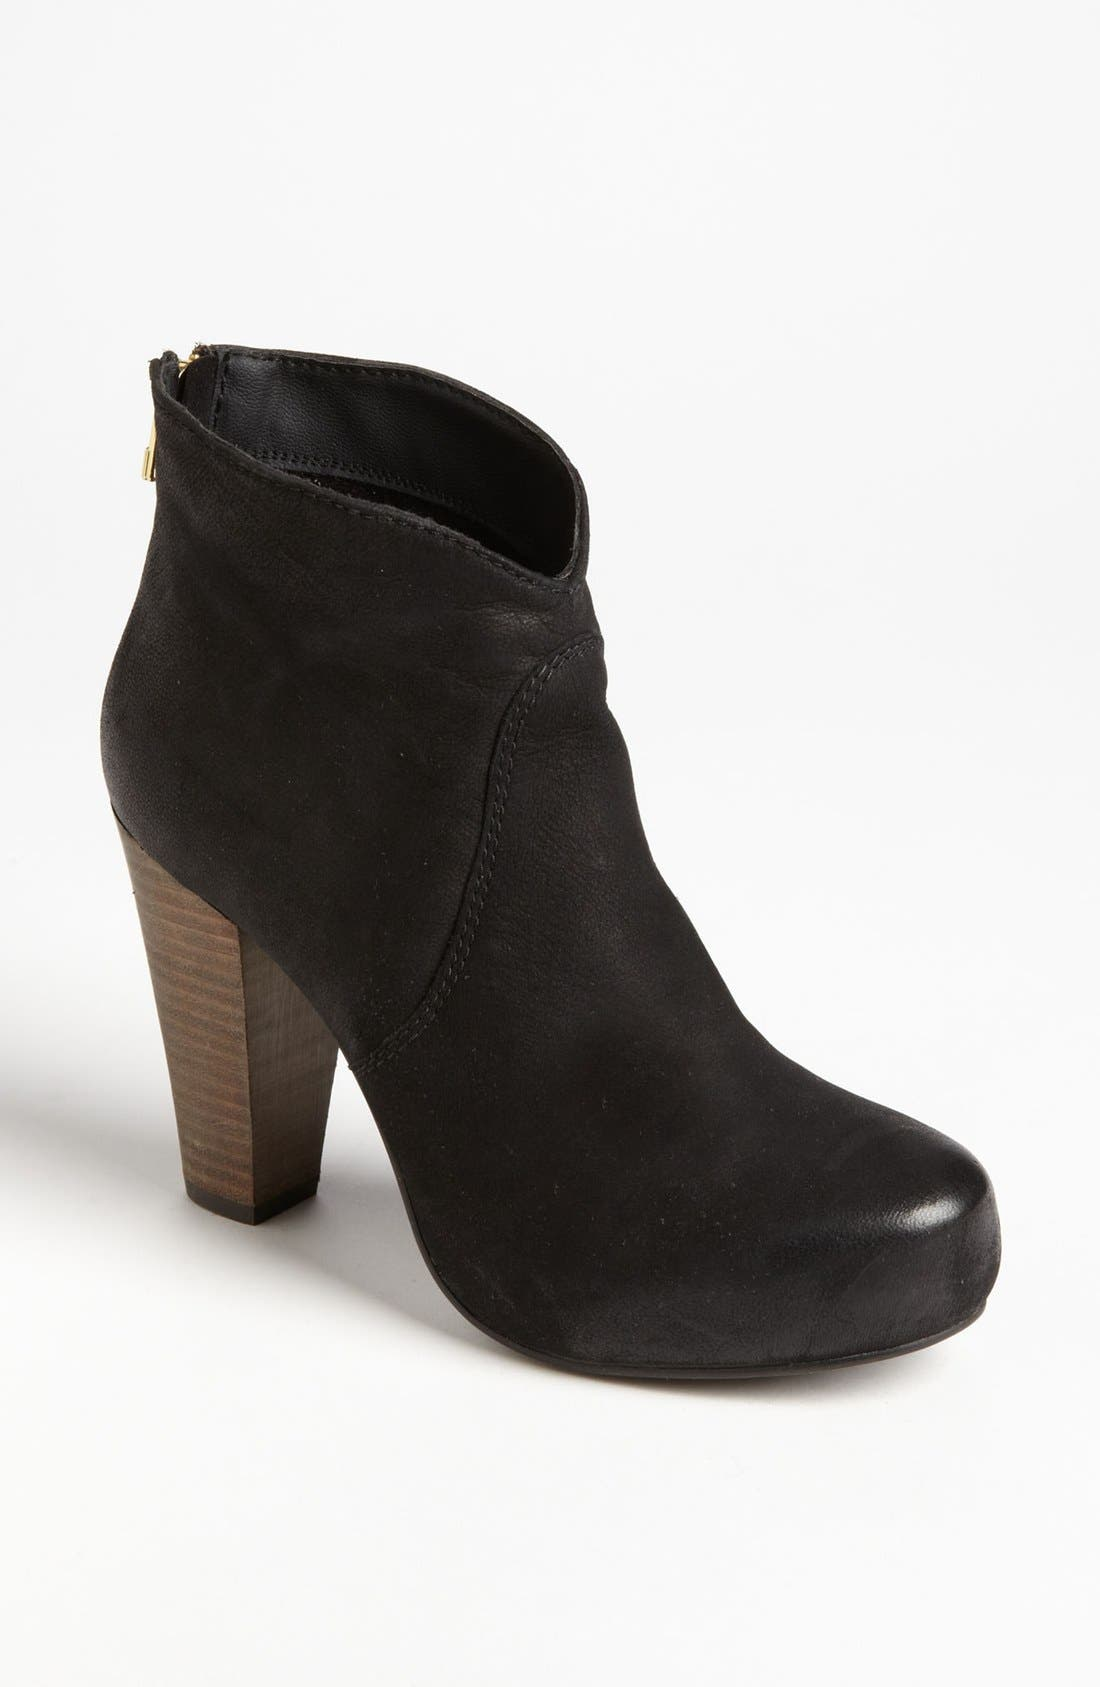 Alternate Image 1 Selected - Steve Madden 'Naples' Bootie